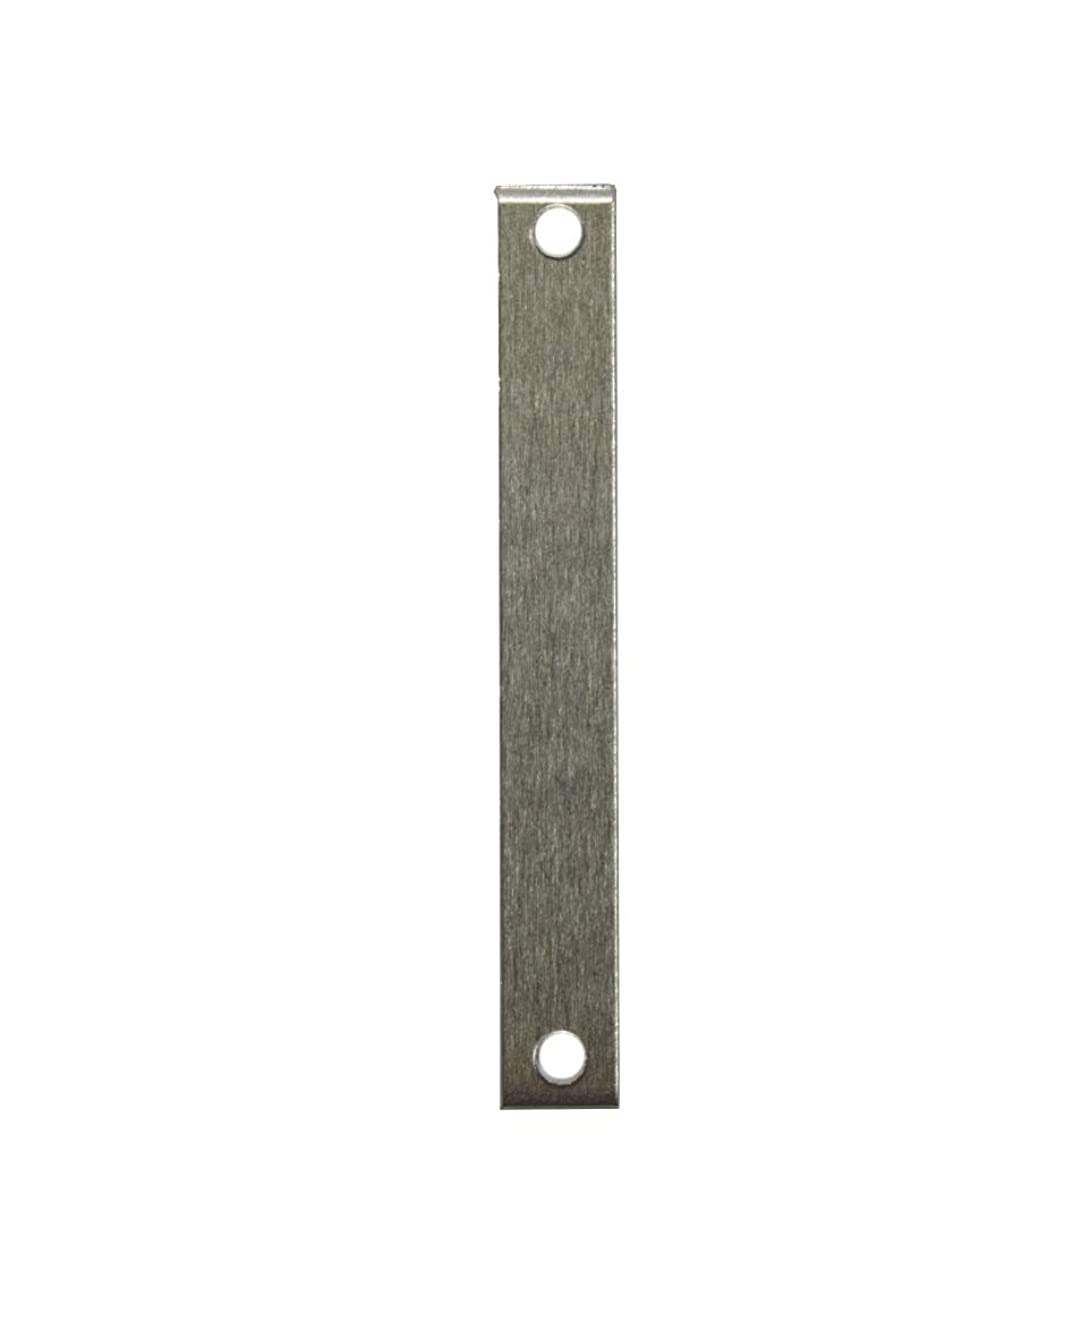 RMP Stamping Blanks, 1/4 Inch x 2 Inch Rectangle with Two Holes, Aluminum 0.063 Inch (14 Ga.) - 50 Pack